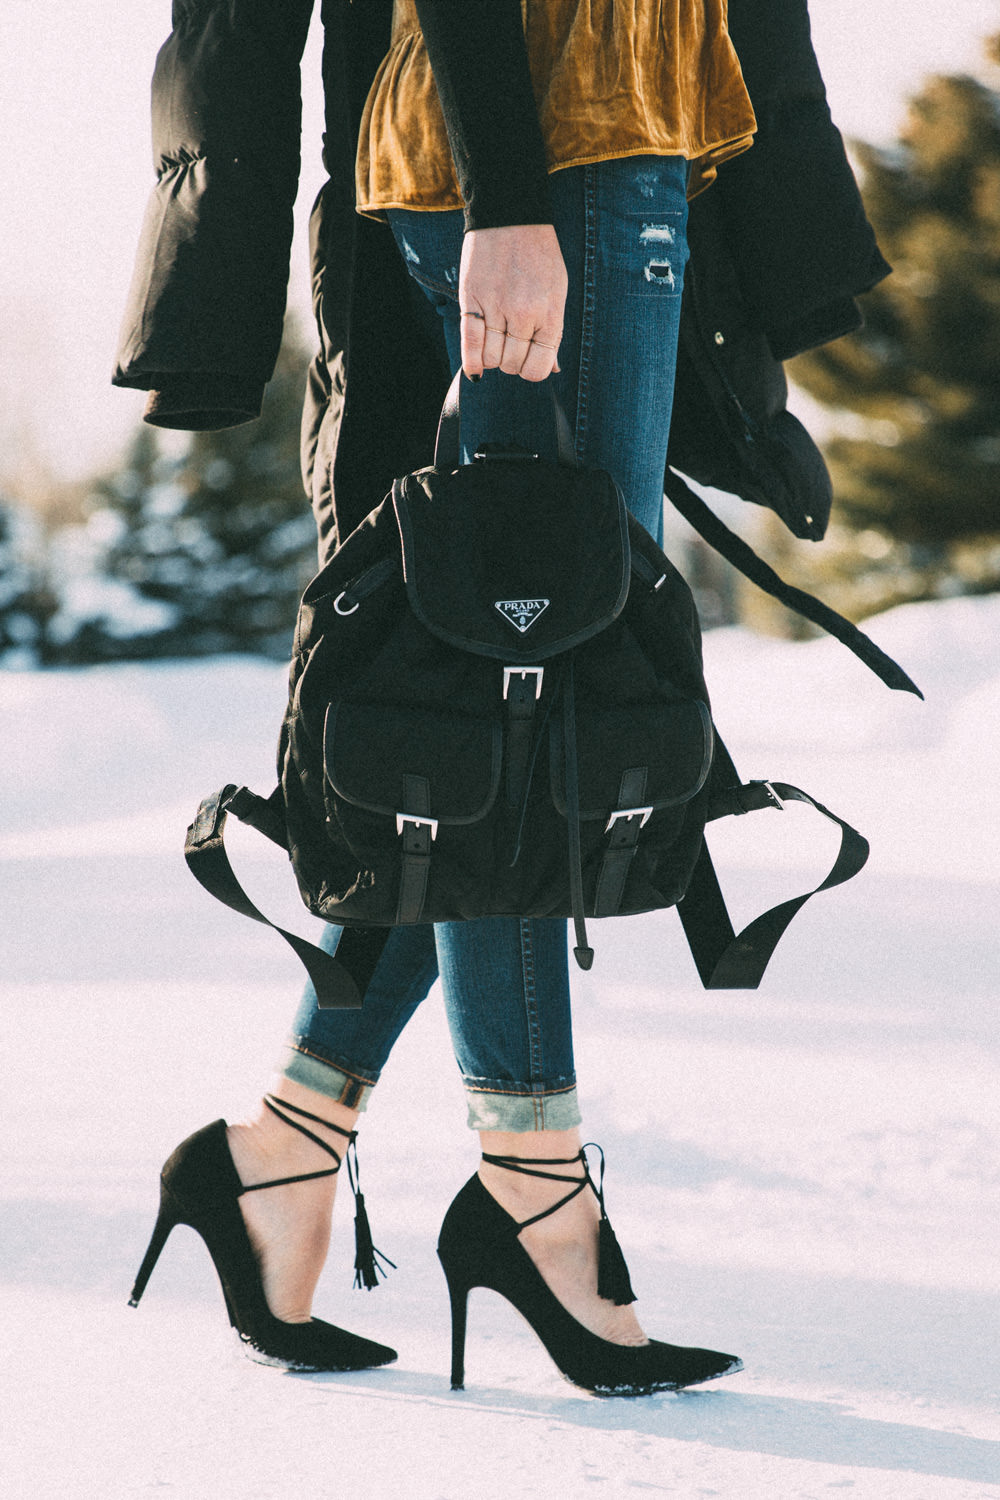 Caitlin Lindquist of Dash of Darling shares a winter outfit in Jackson Wyoming wearing a velvet camisole tank top and madewell ripped high rise skinny denim.